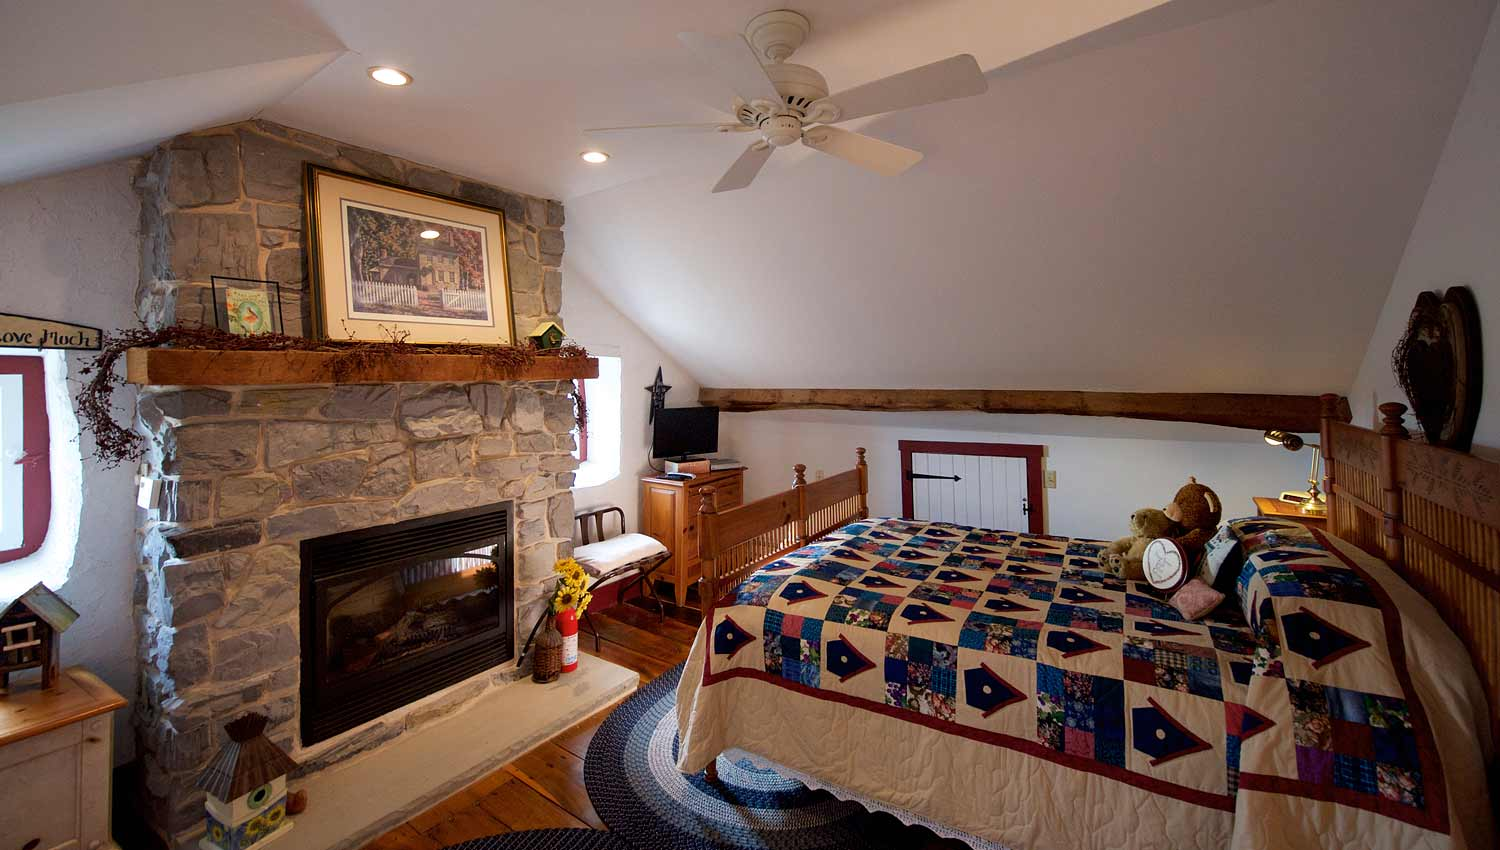 Bed and Breakfast Guest Room with Fireplace